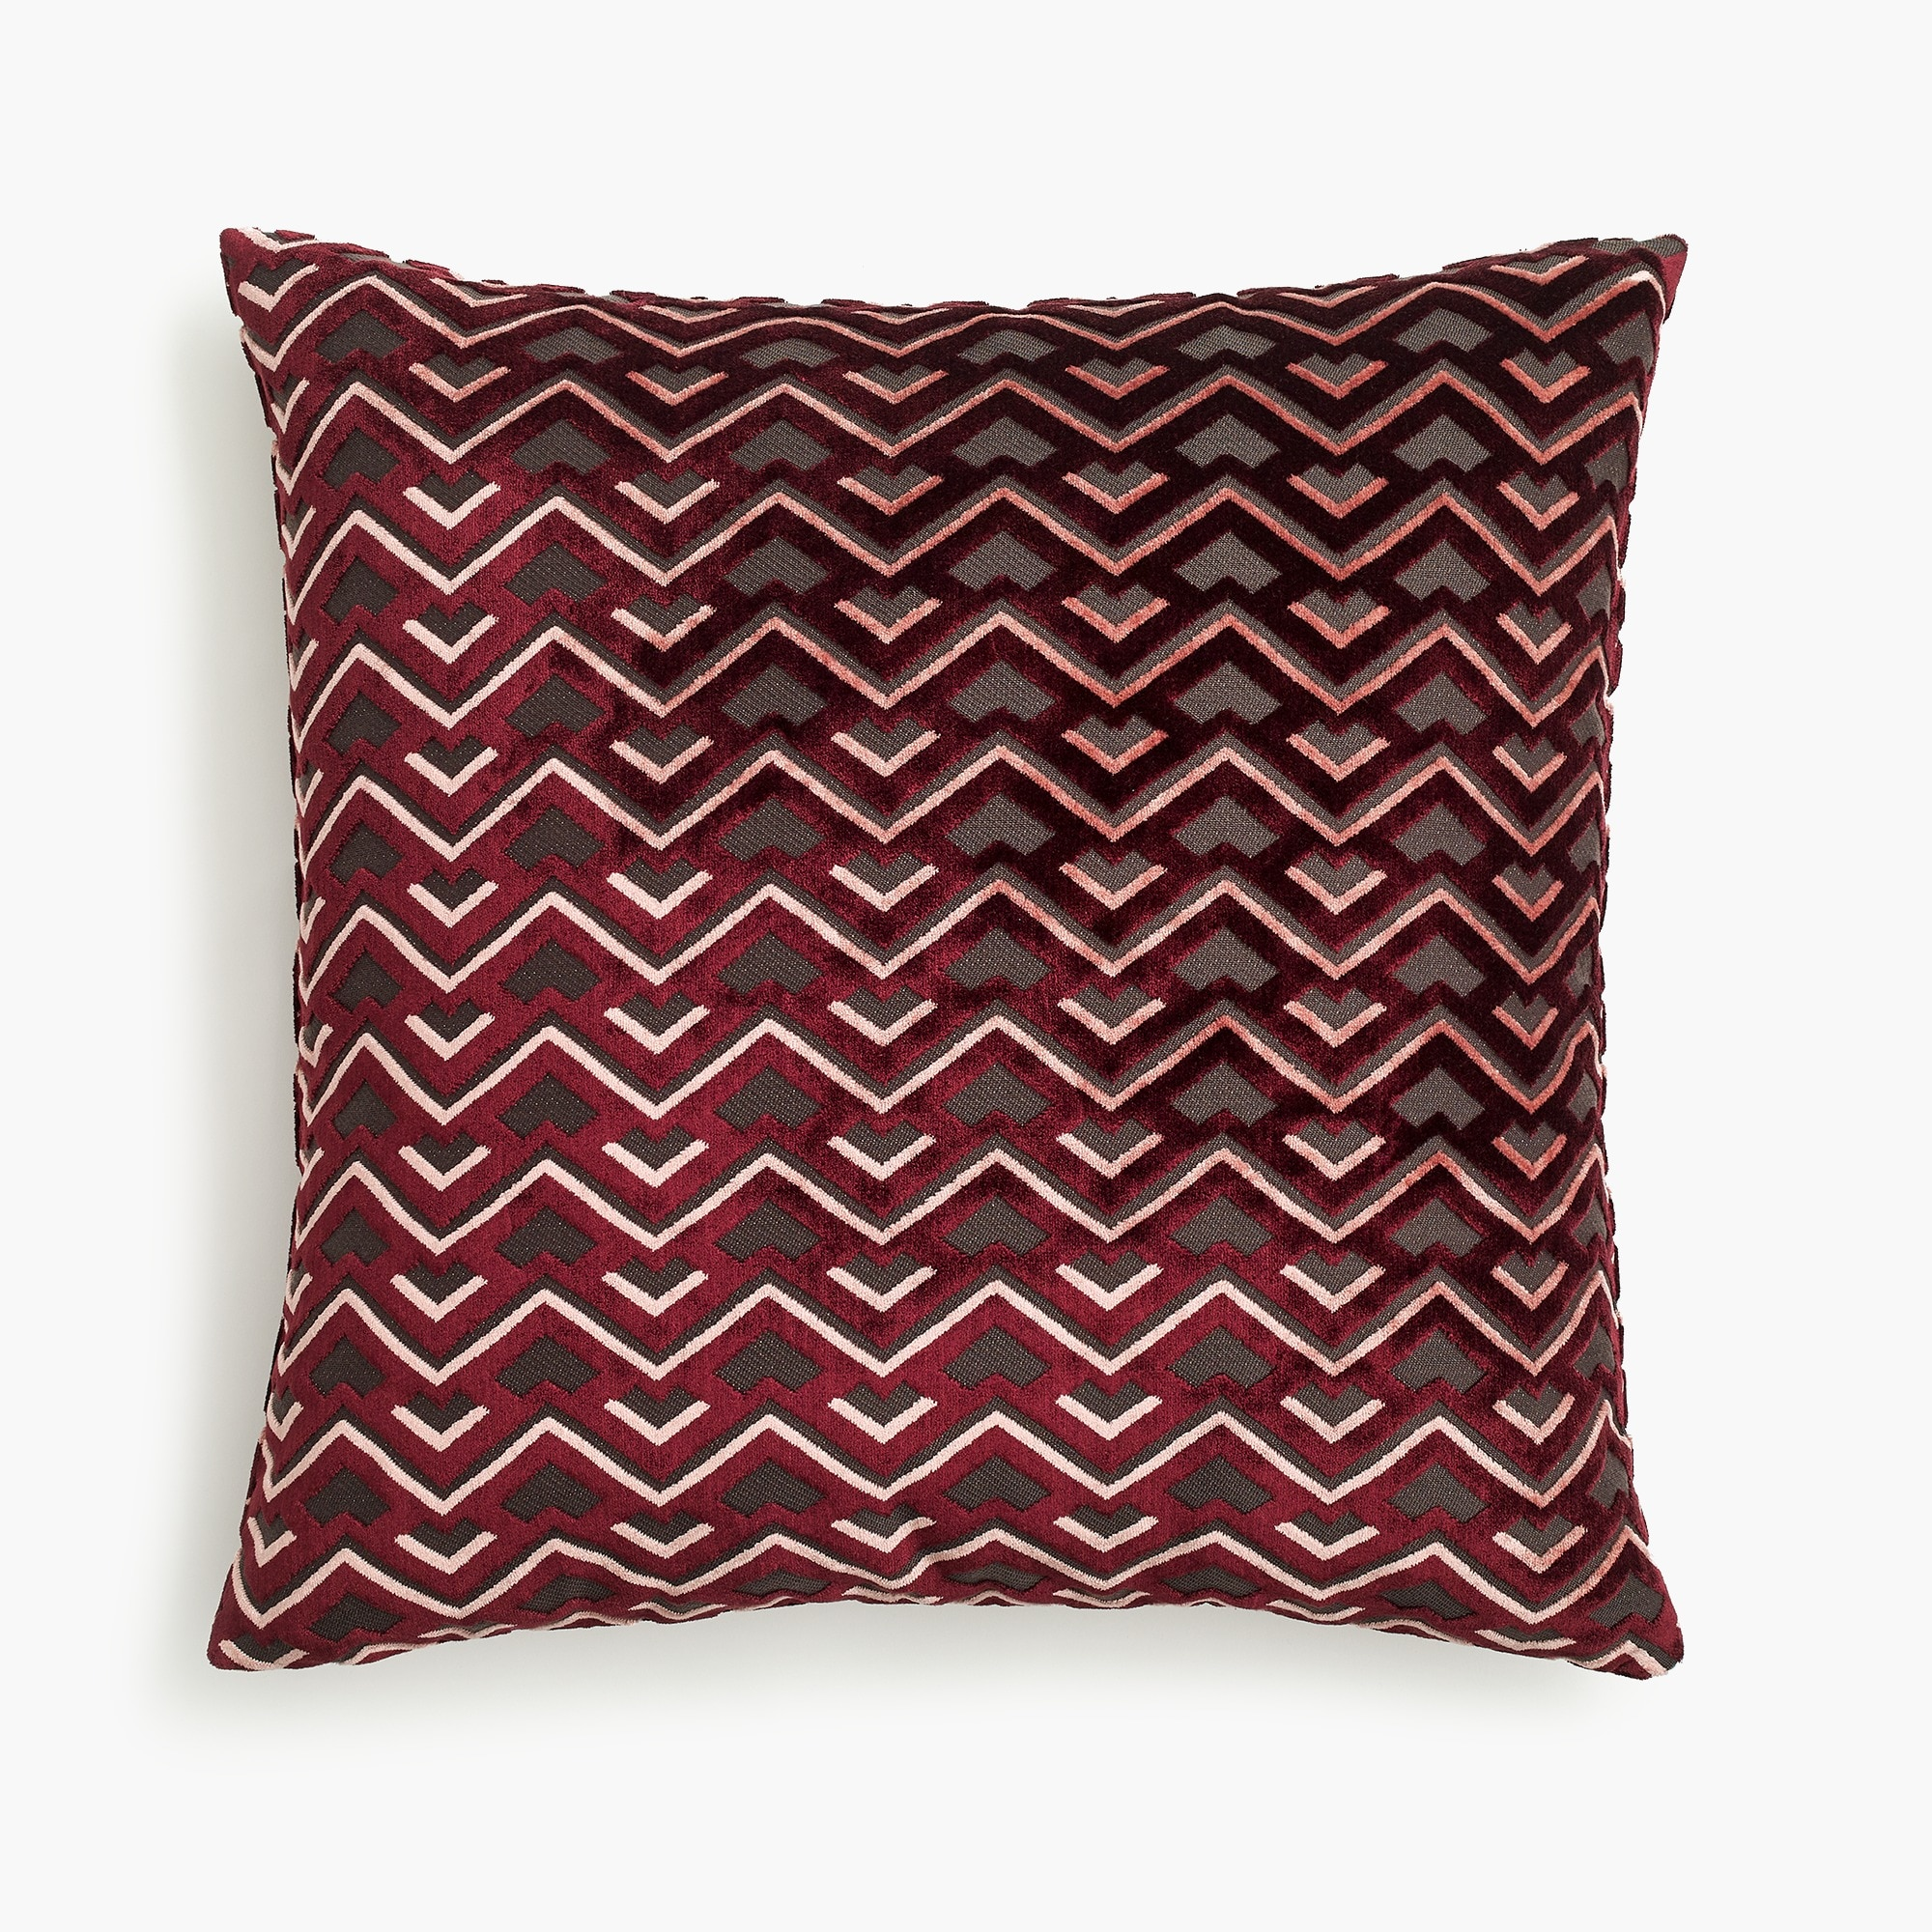 Image 1 for Compono velvet pillow in zigzag pattern